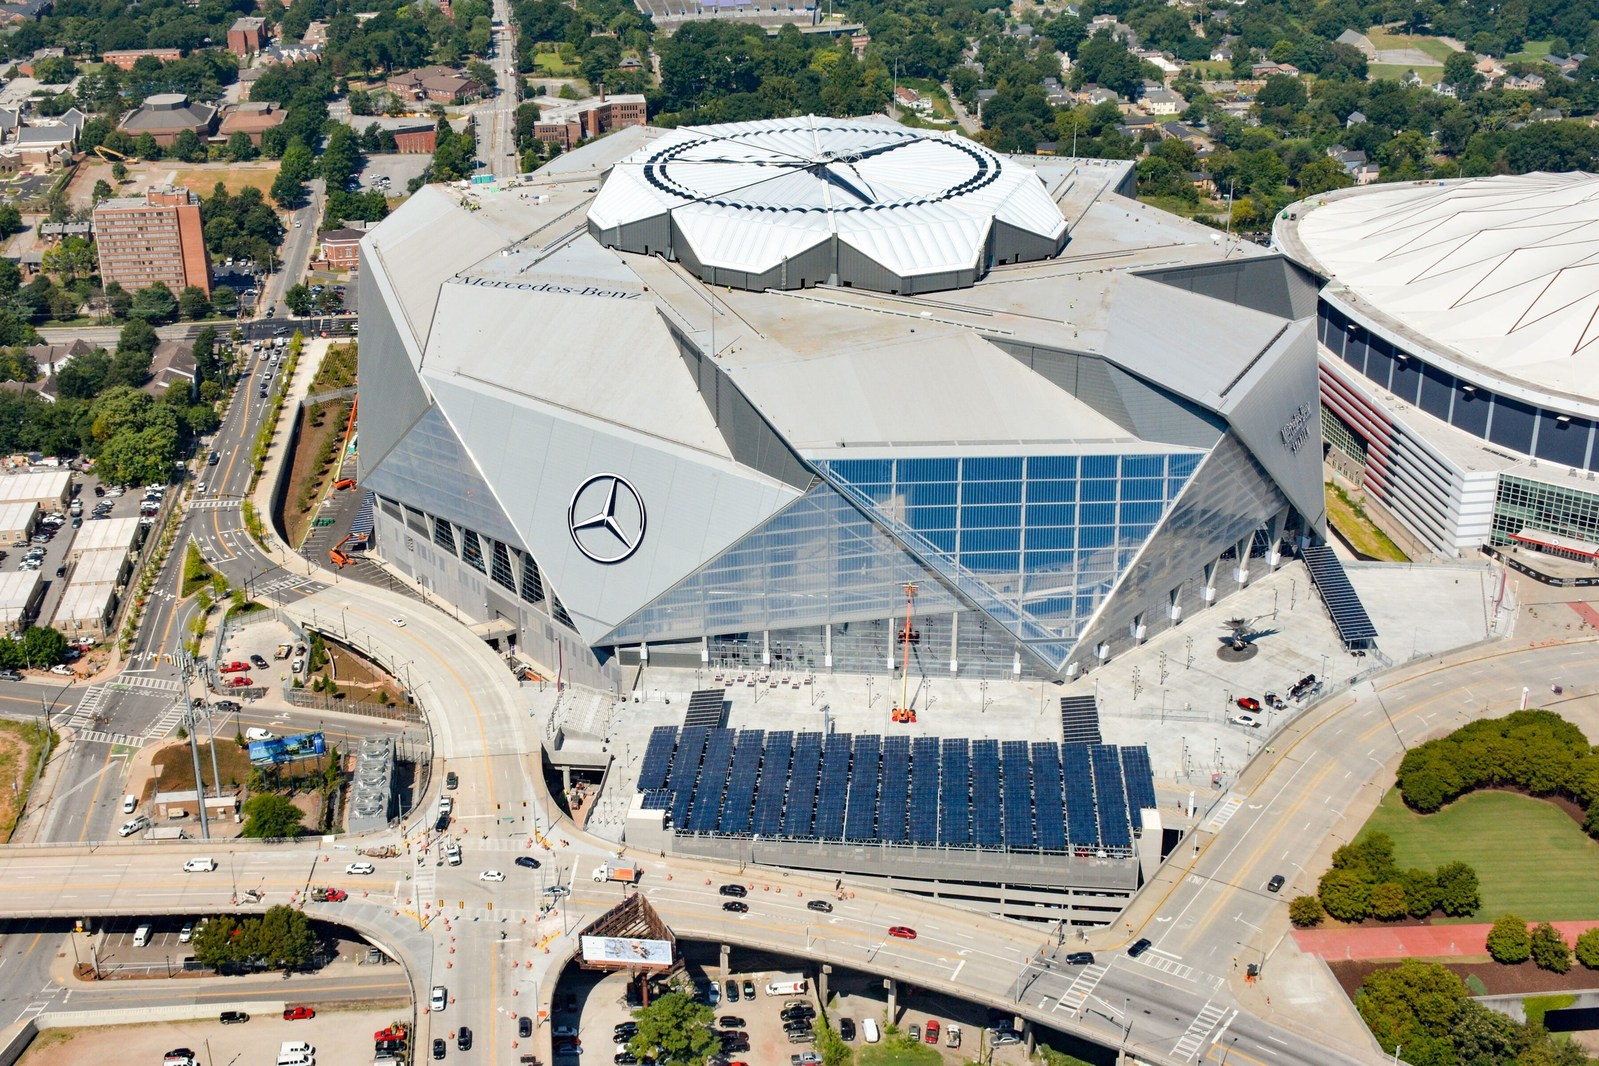 The Mercedes-Benz Stadium project was developed in coordination with and approved by the Georgia Public Service Commission (PSC). Image: Georgia Power